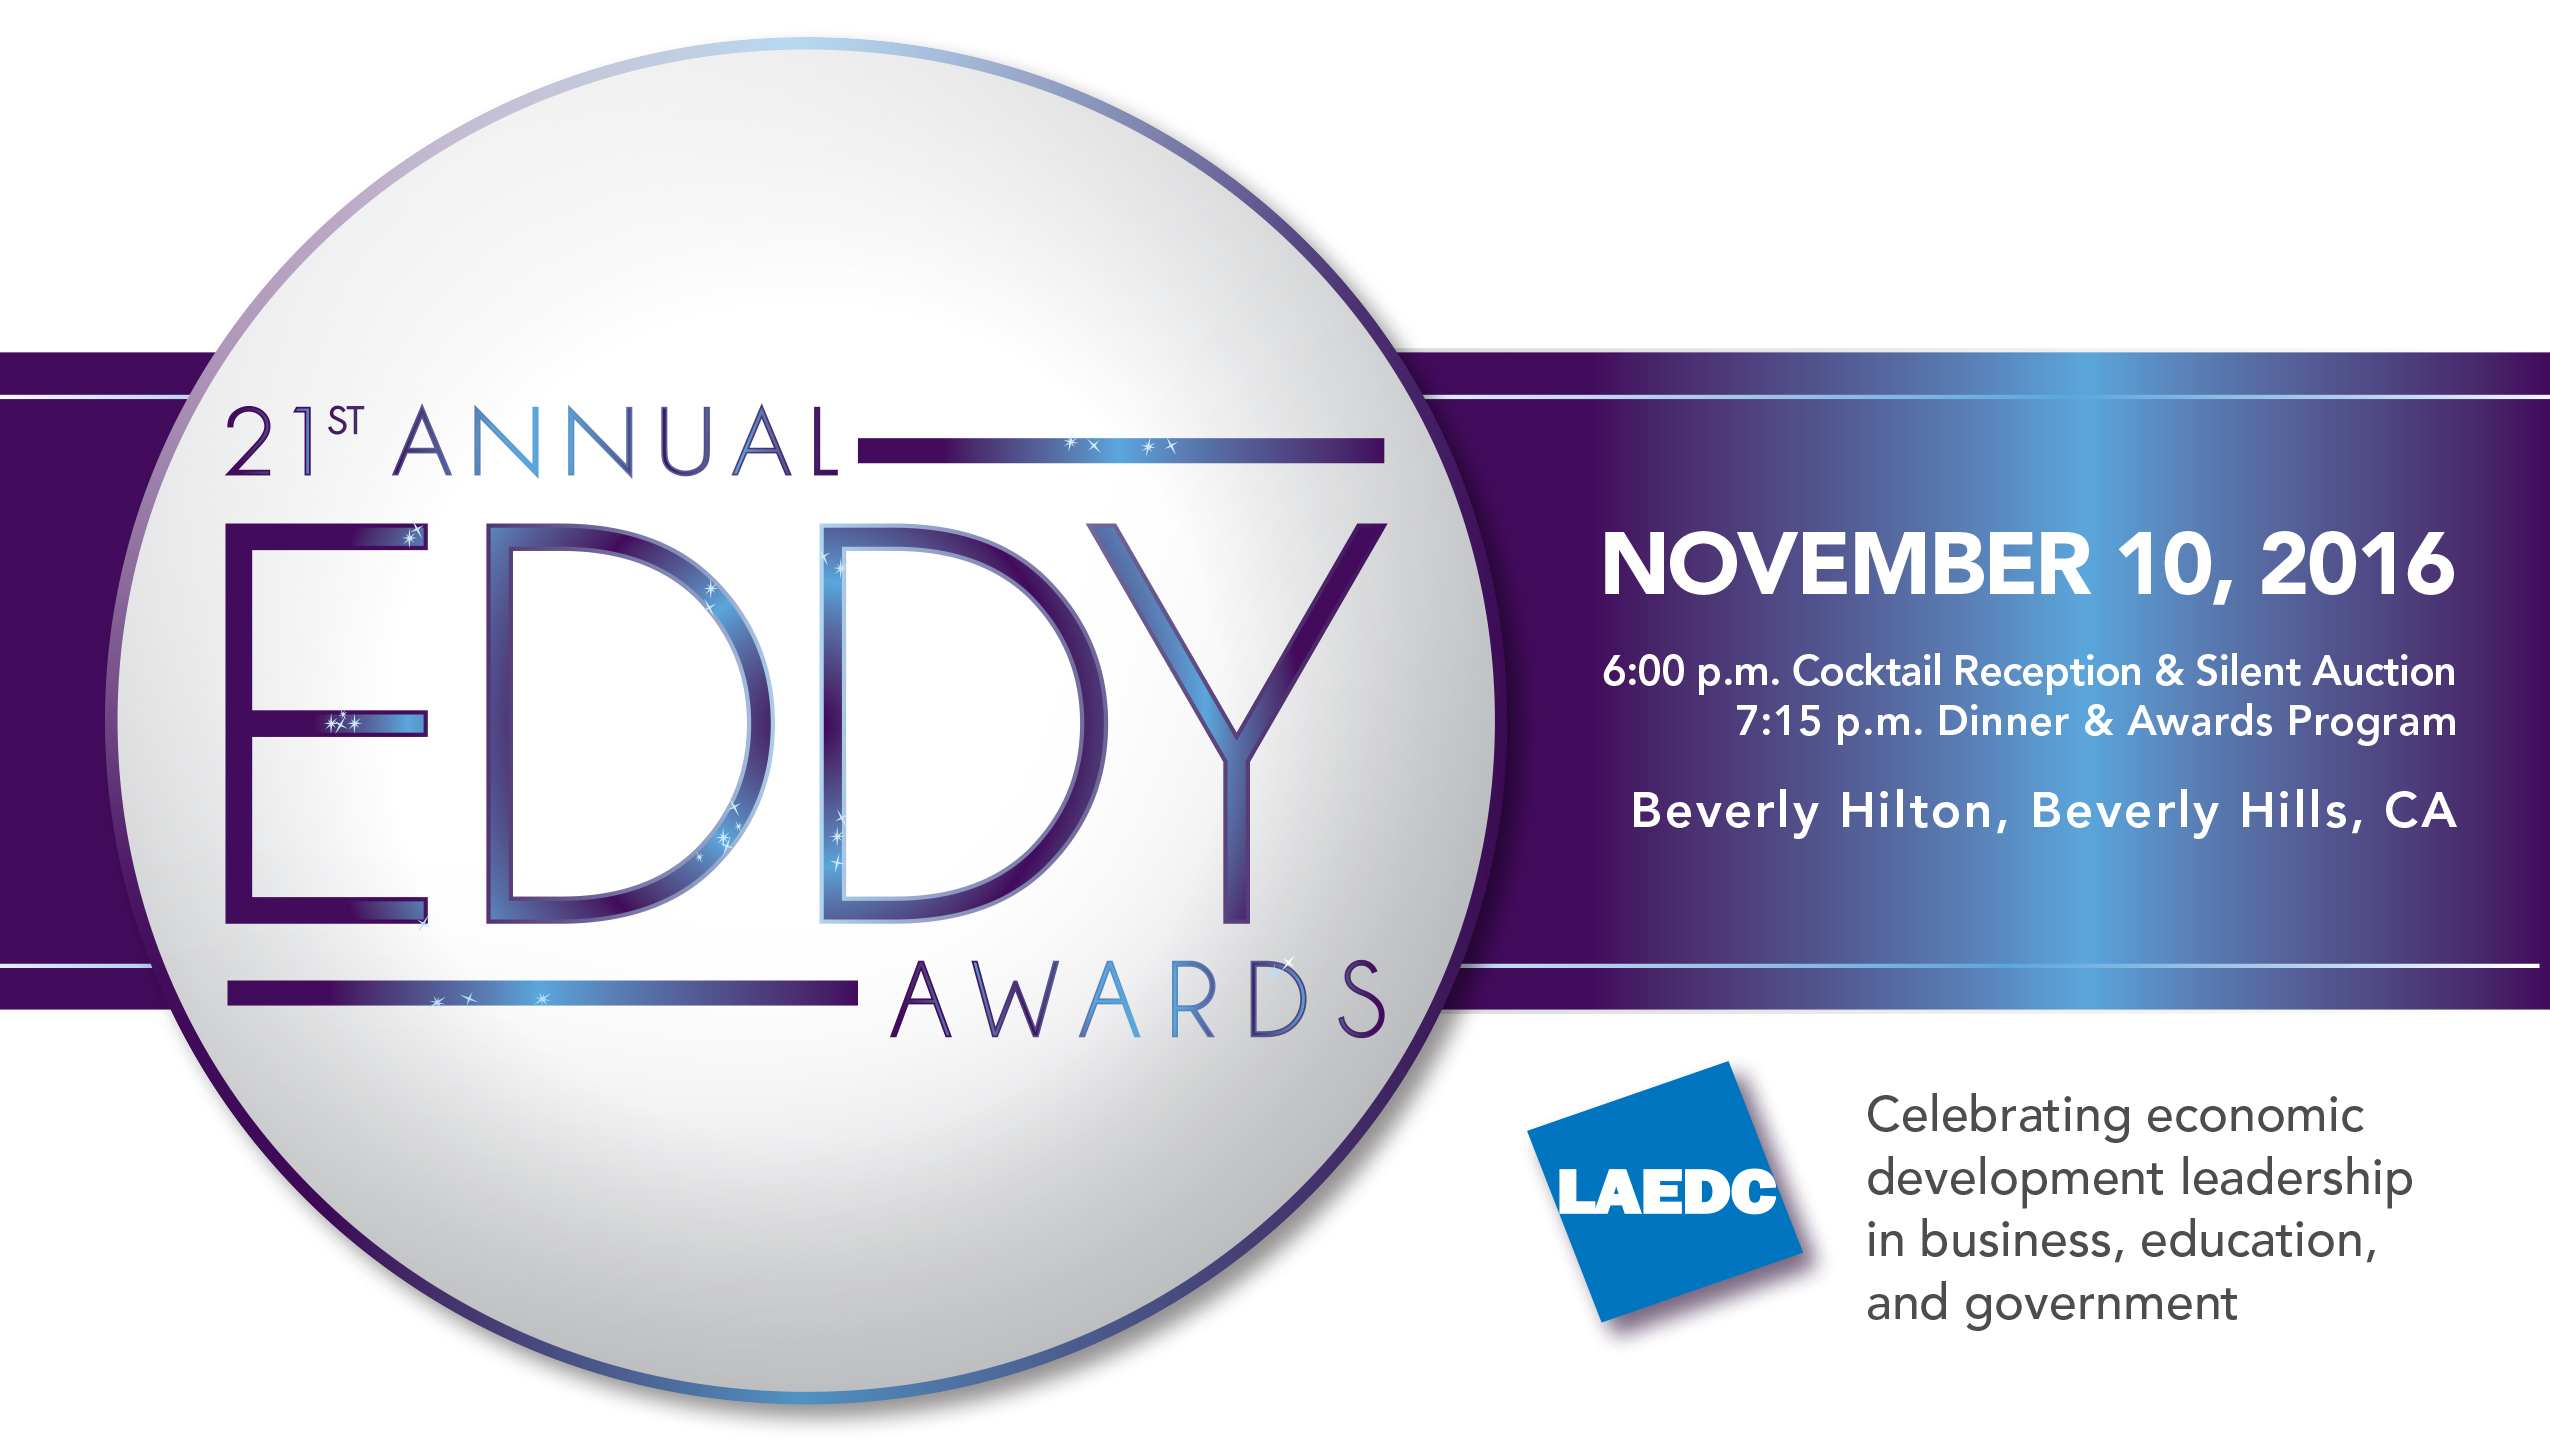 21st Annual Eddy Awards